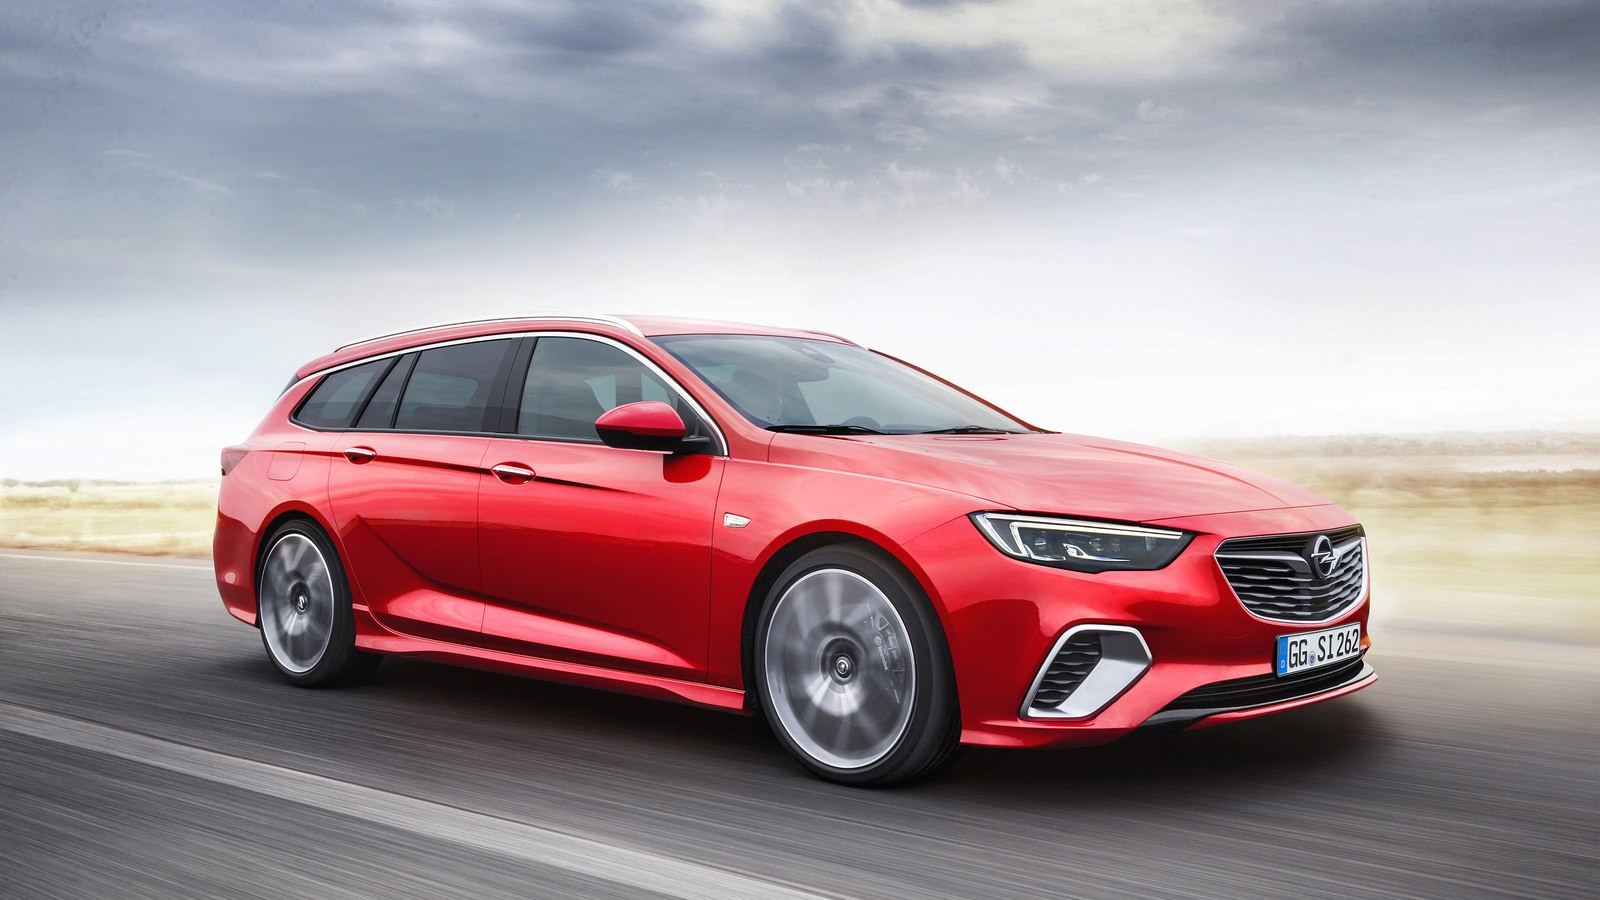 The new Opel Insignia GSi Sports Tourer